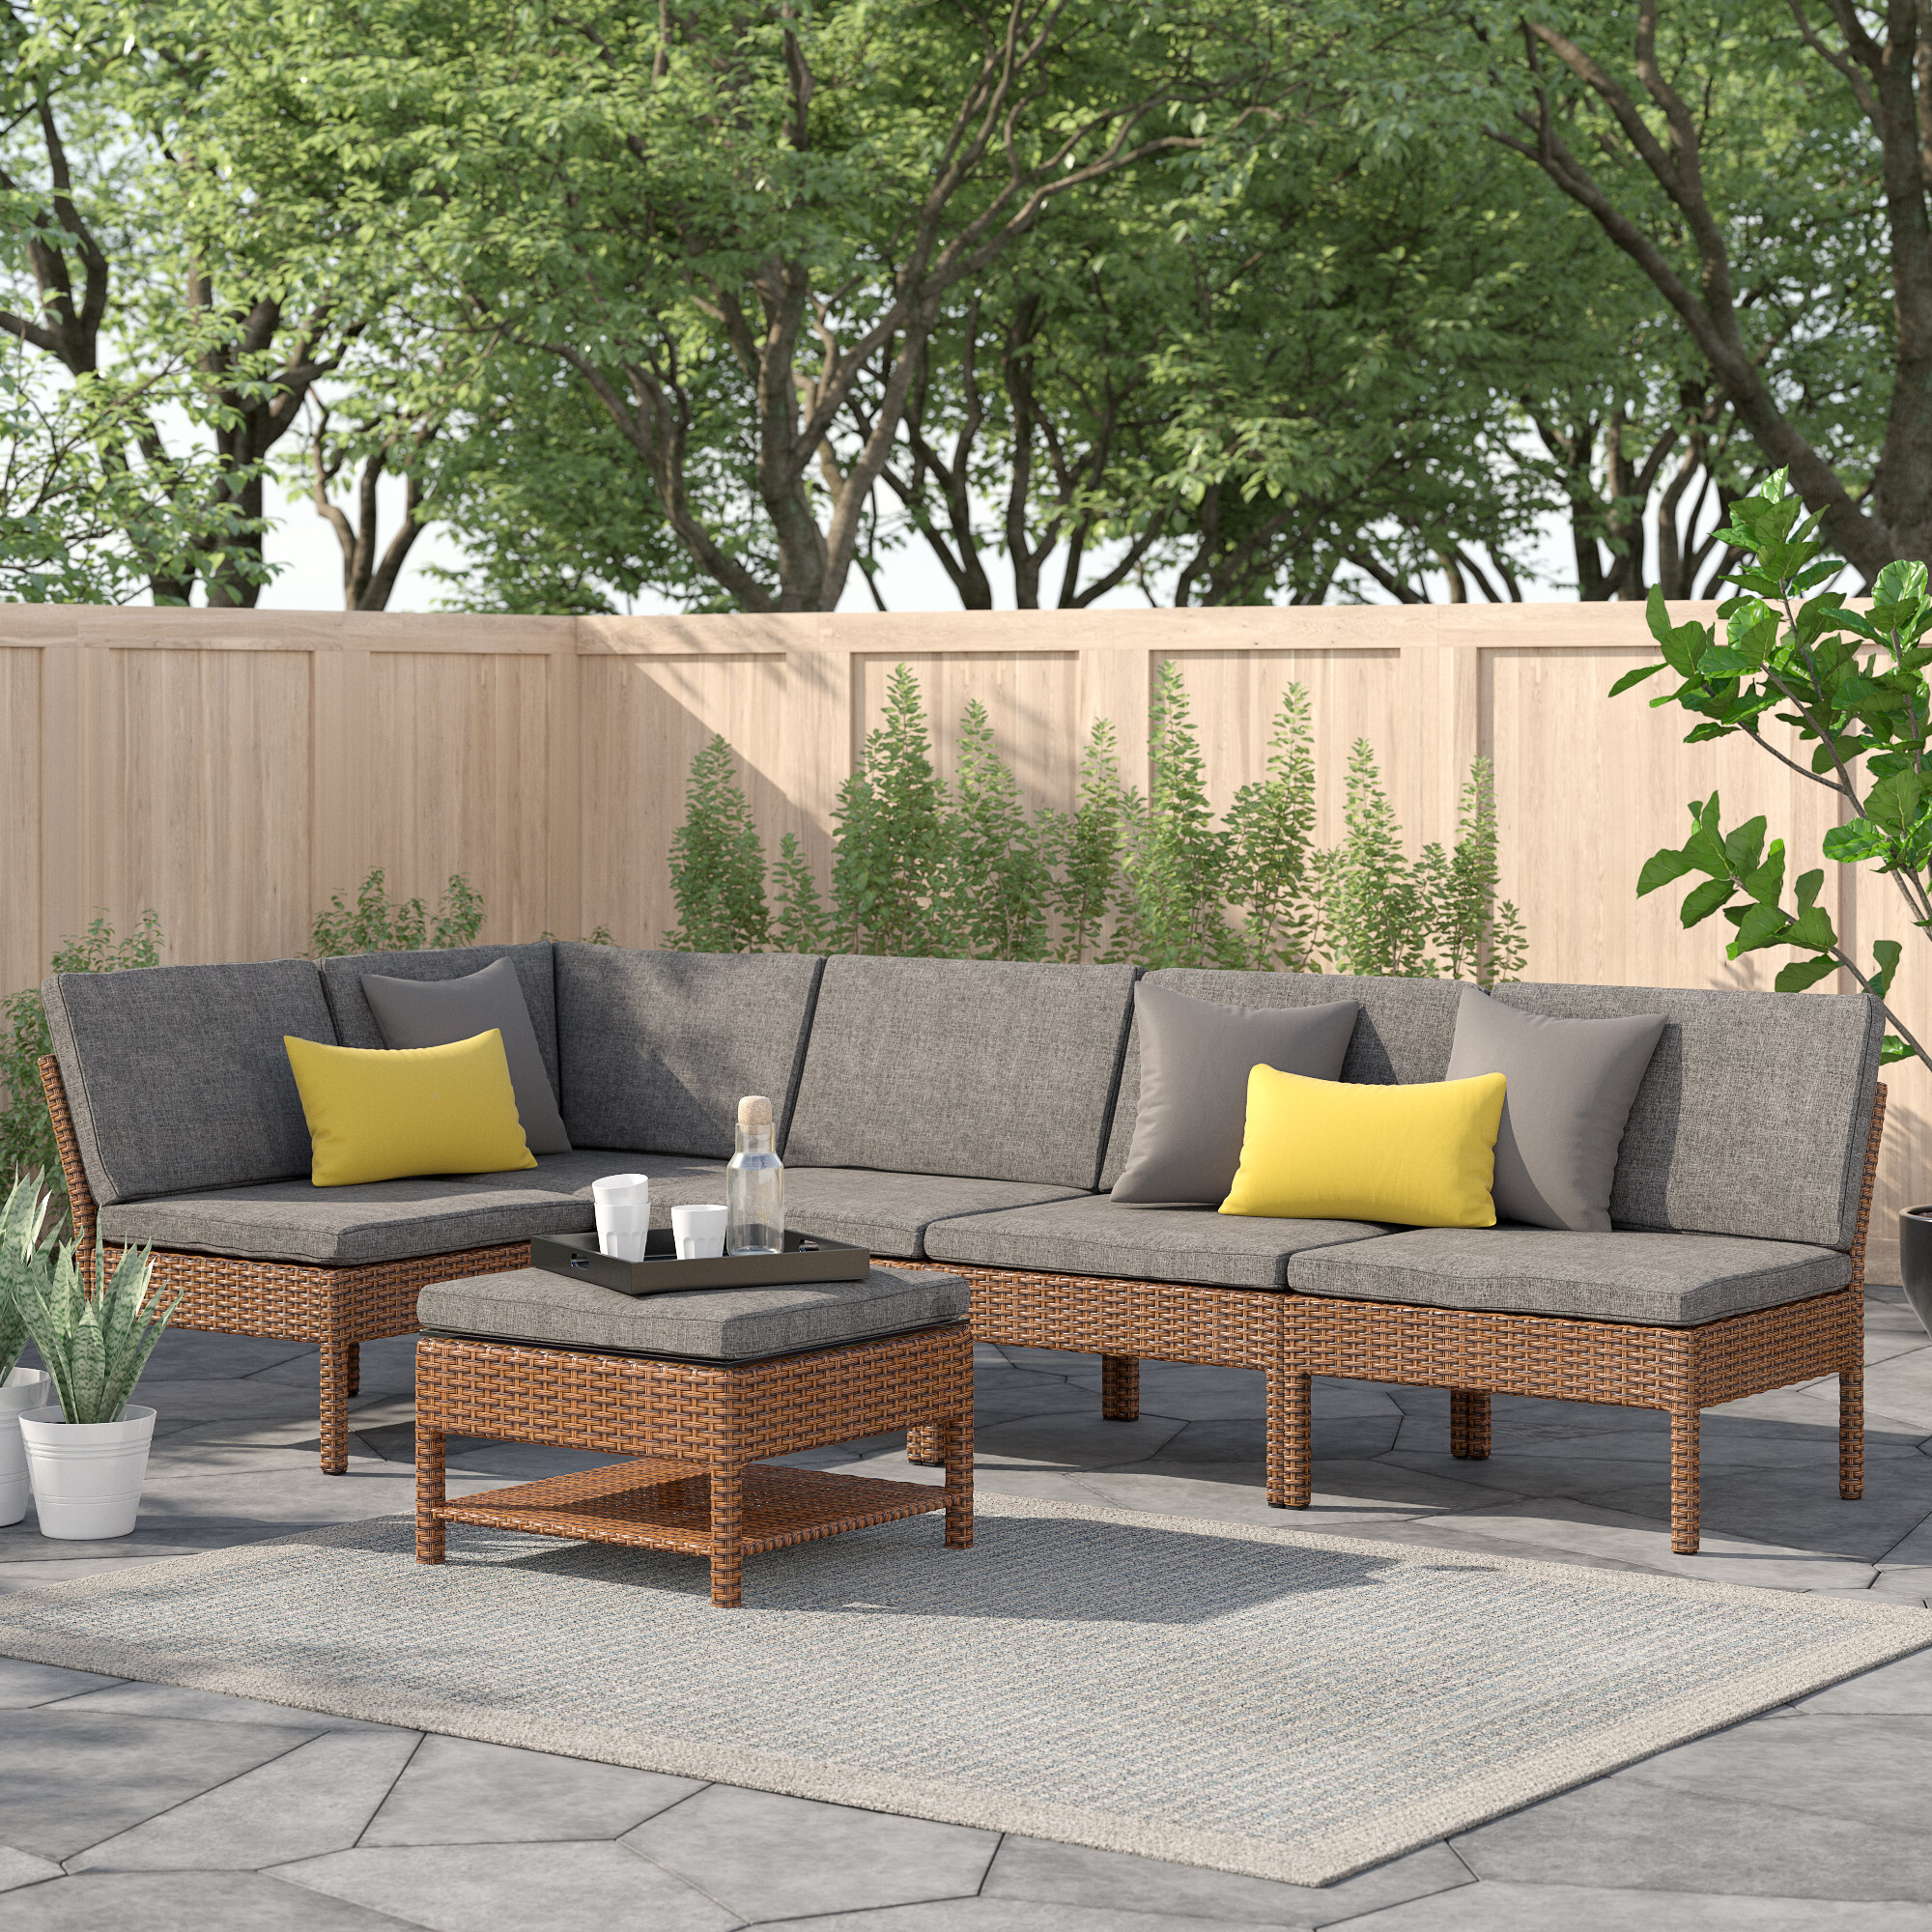 6 Piece Outdoor Sectional You'll Love In  (View 2 of 20)